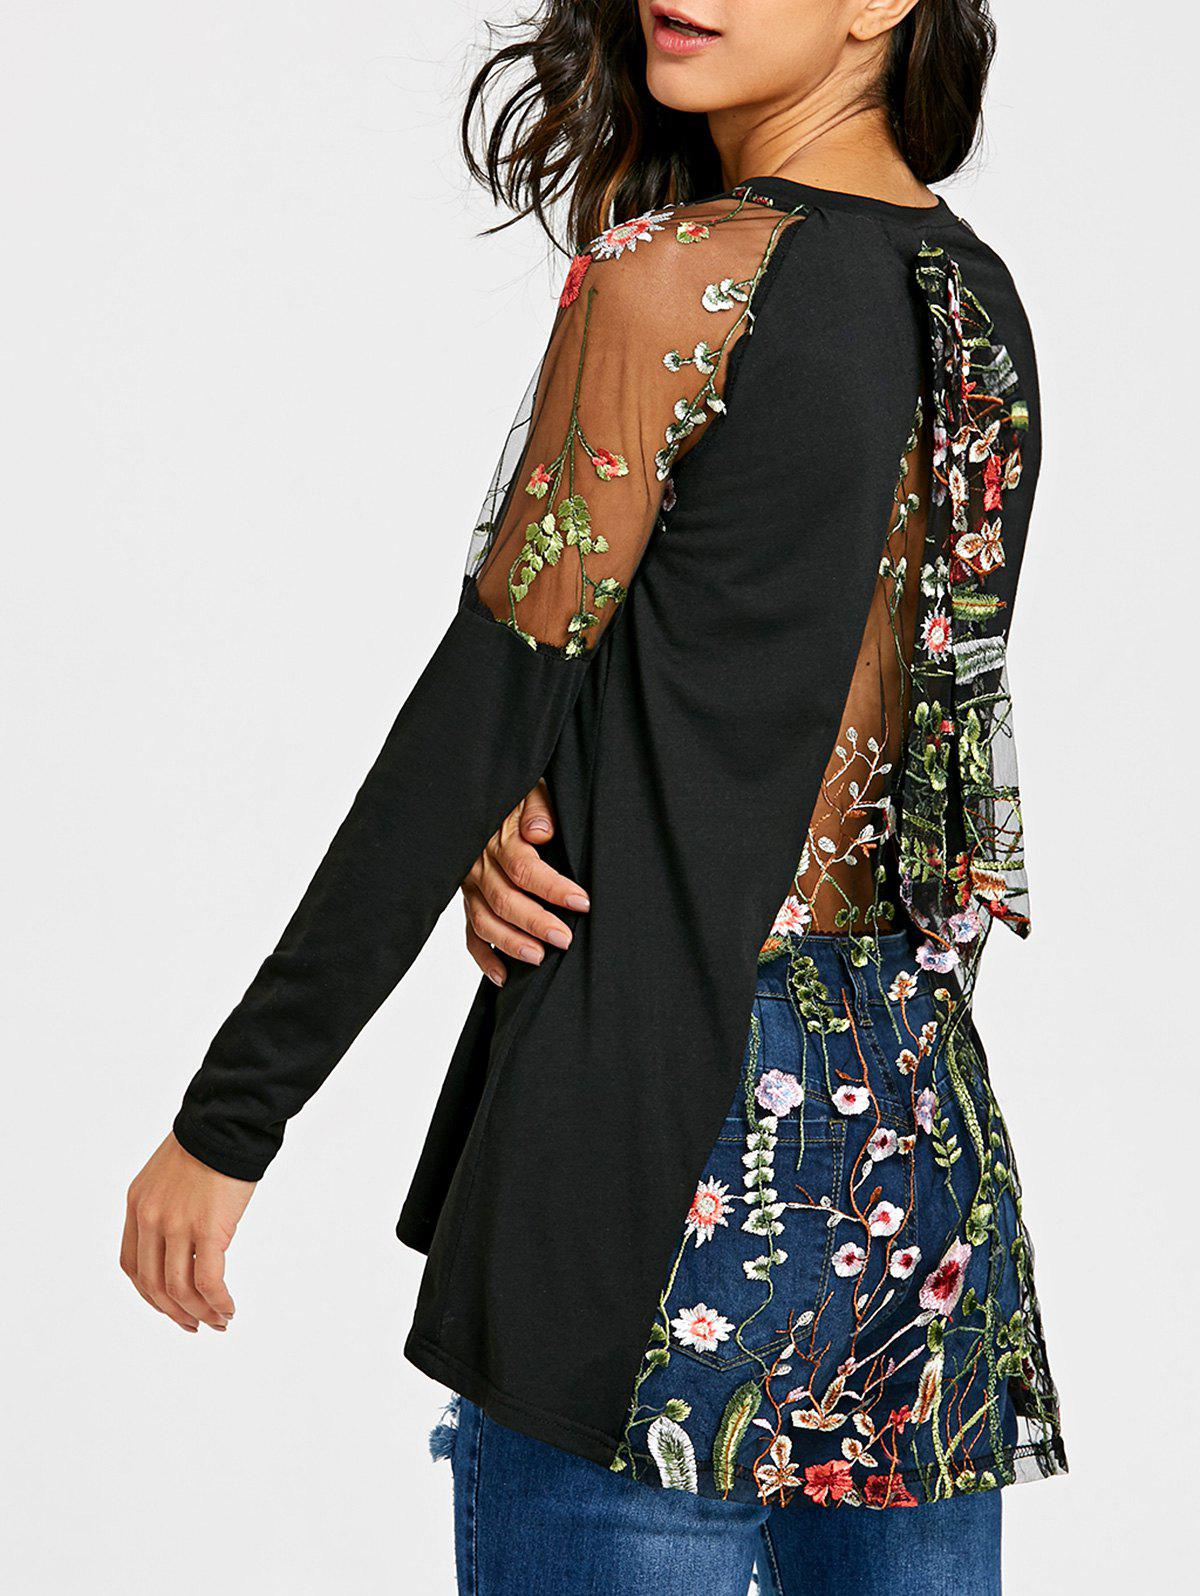 Hot Raglan Sleeve Sheer Embroidery Top